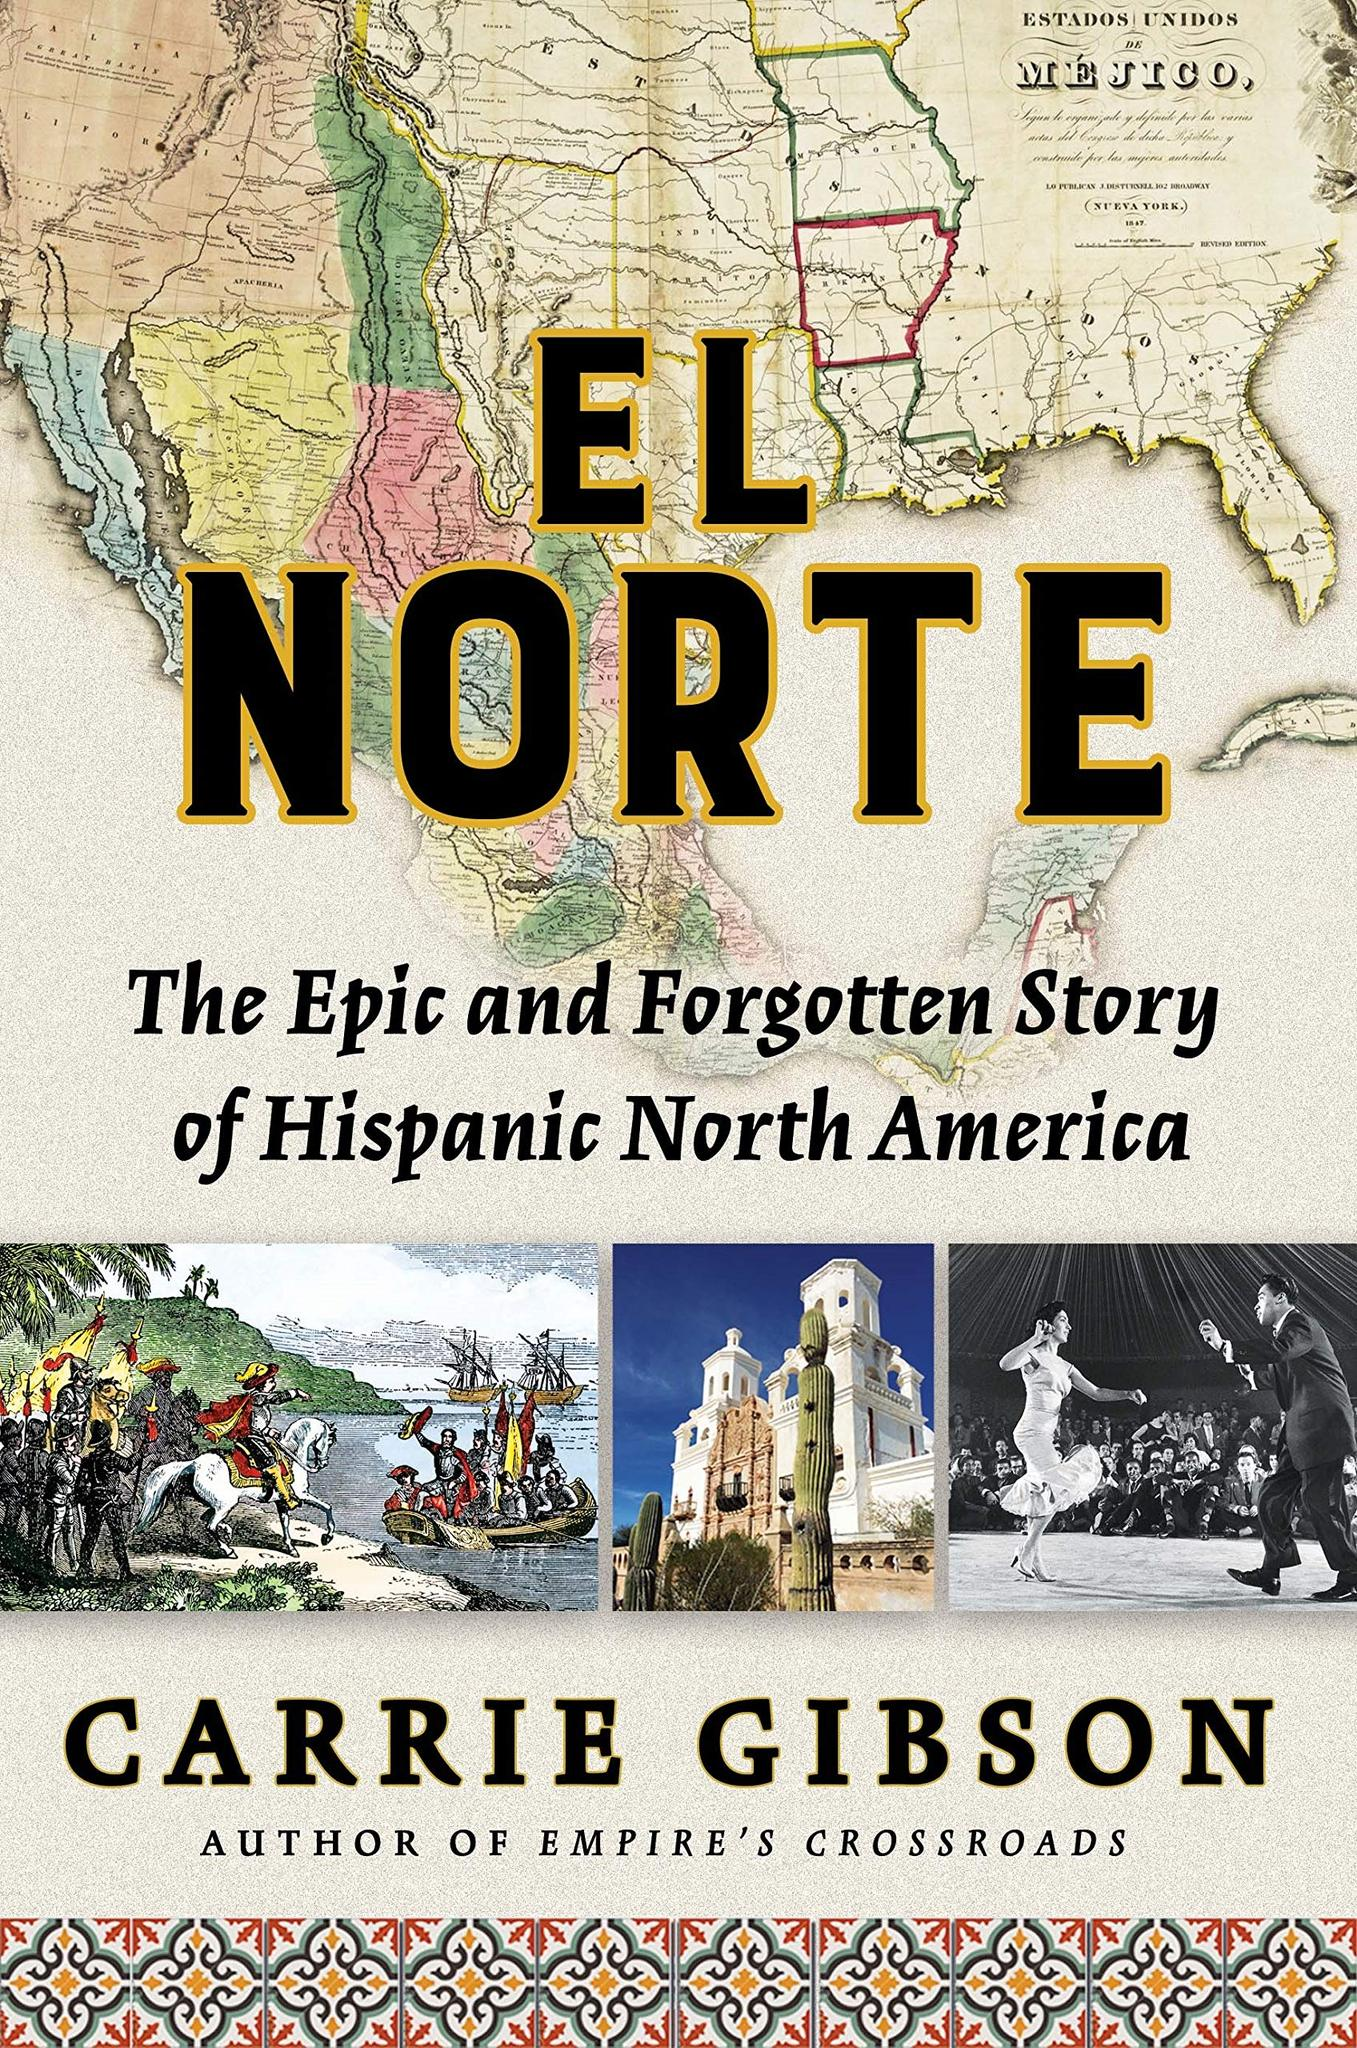 El Norte : The Epic and Forgotten Story of Hispanic North America by Carrie Gibson